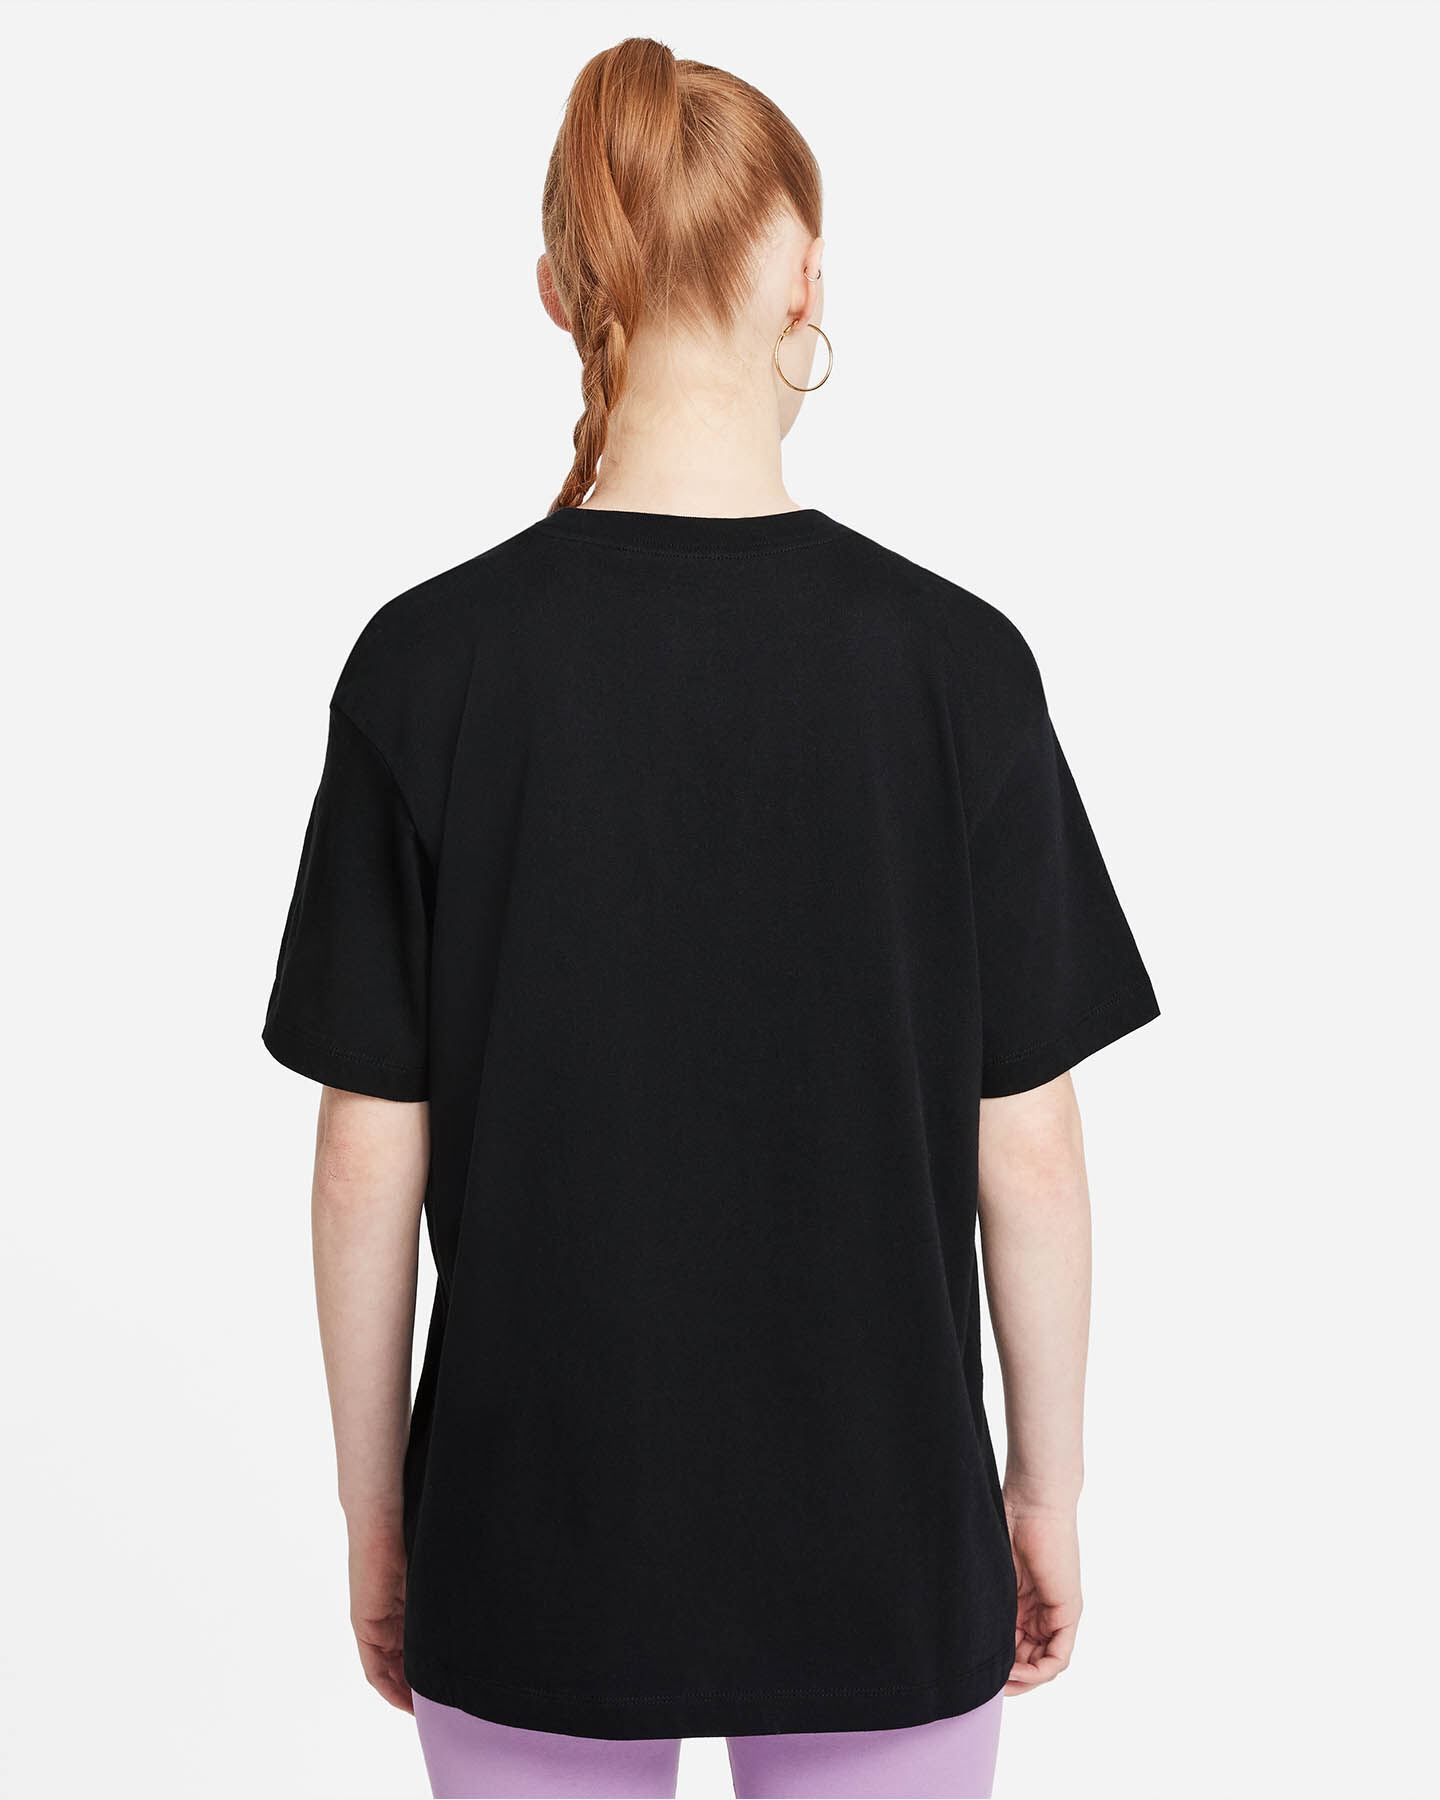 T-Shirt NIKE NEW LOGO W S5320457 scatto 1